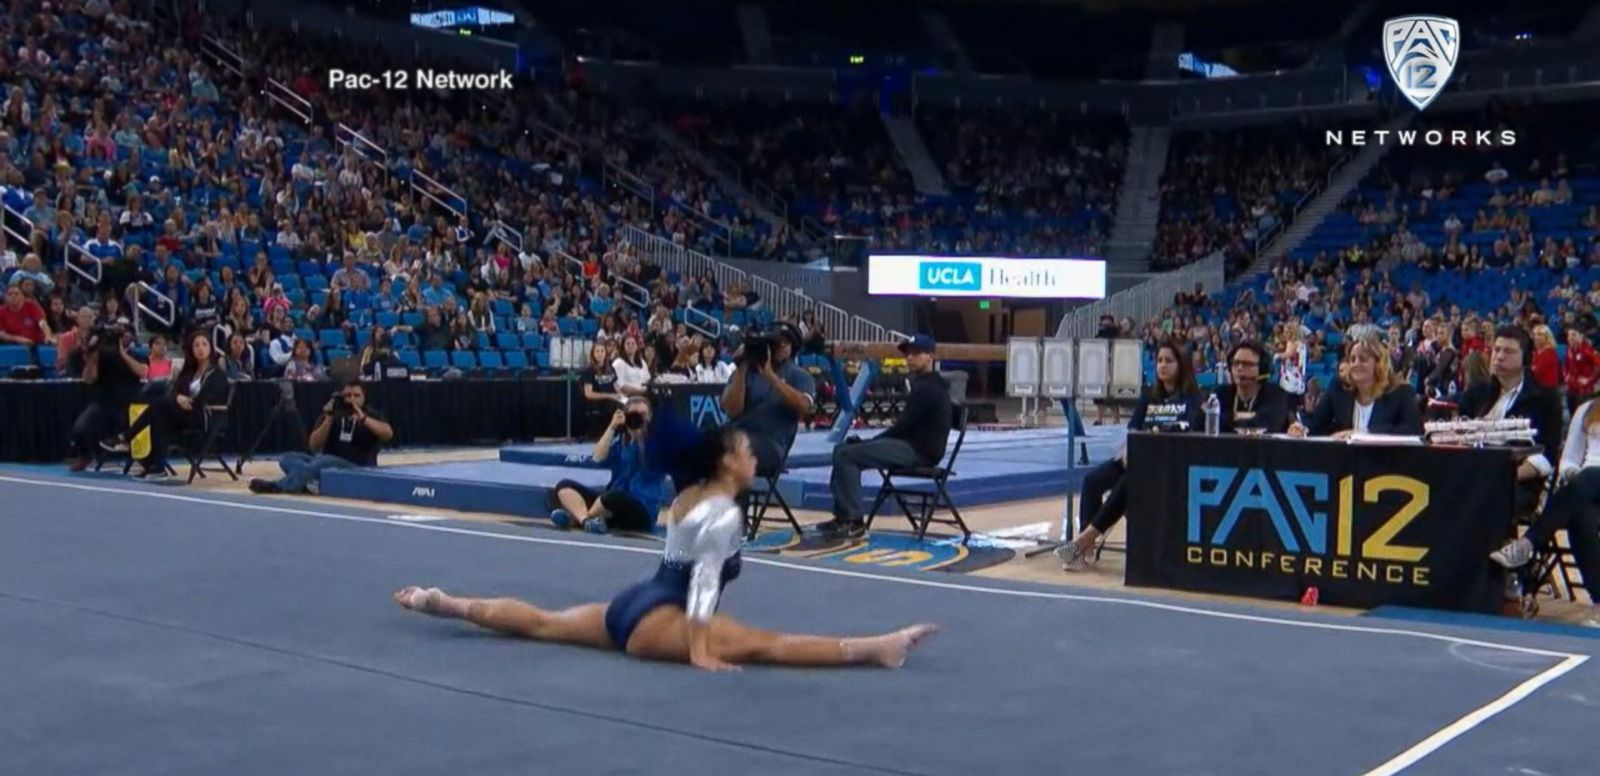 VIDEO: UCLA Gymnast's Floor Routine Goes Viral